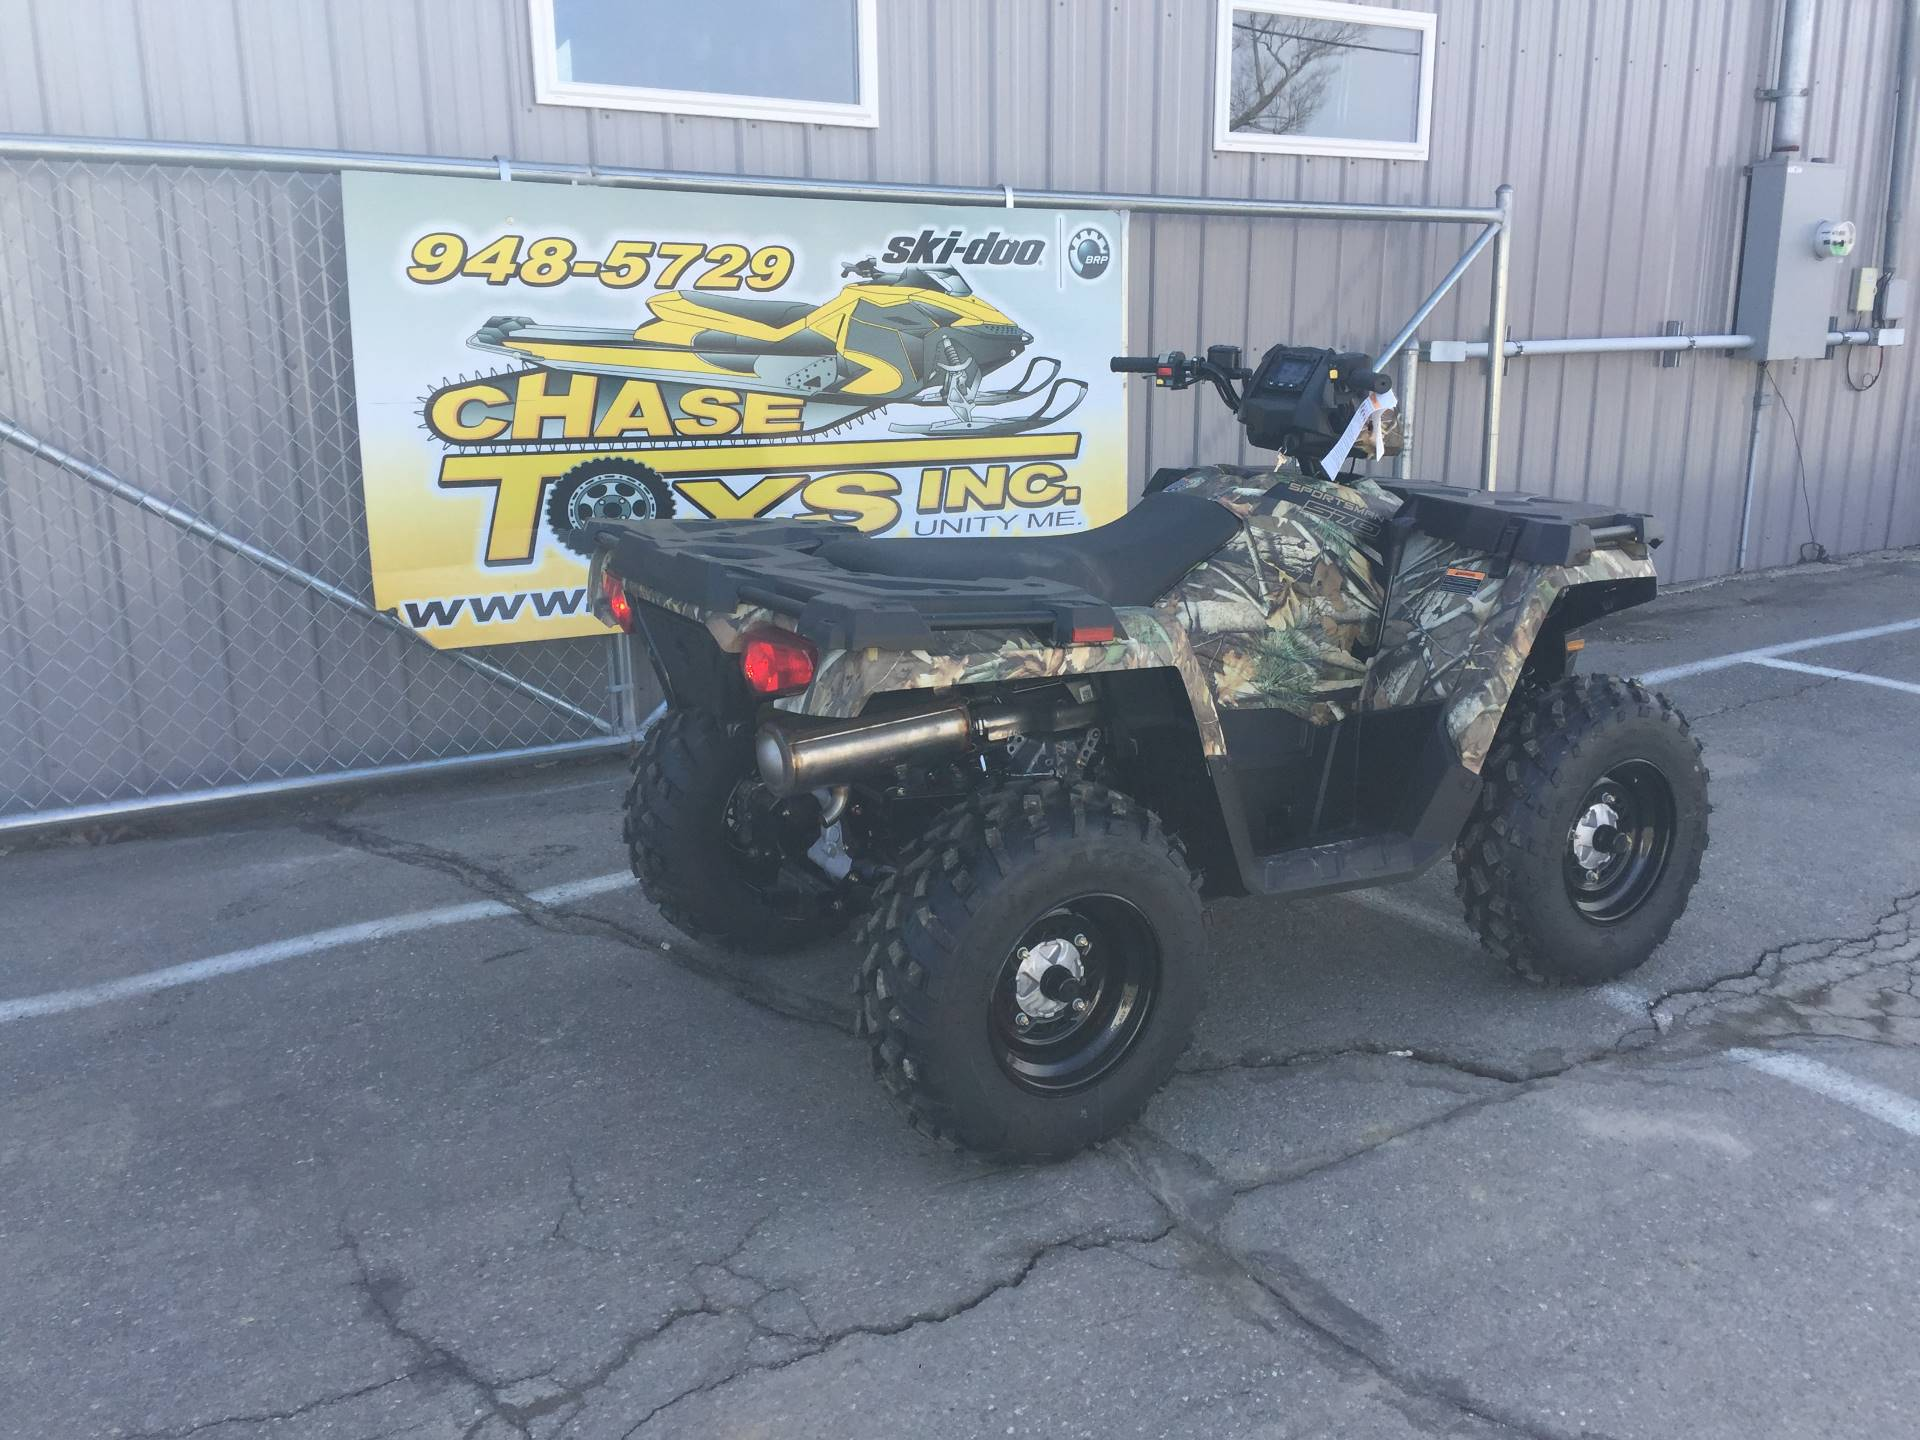 2019 Polaris Sportsman 570 Camo in Unity, Maine - Photo 2